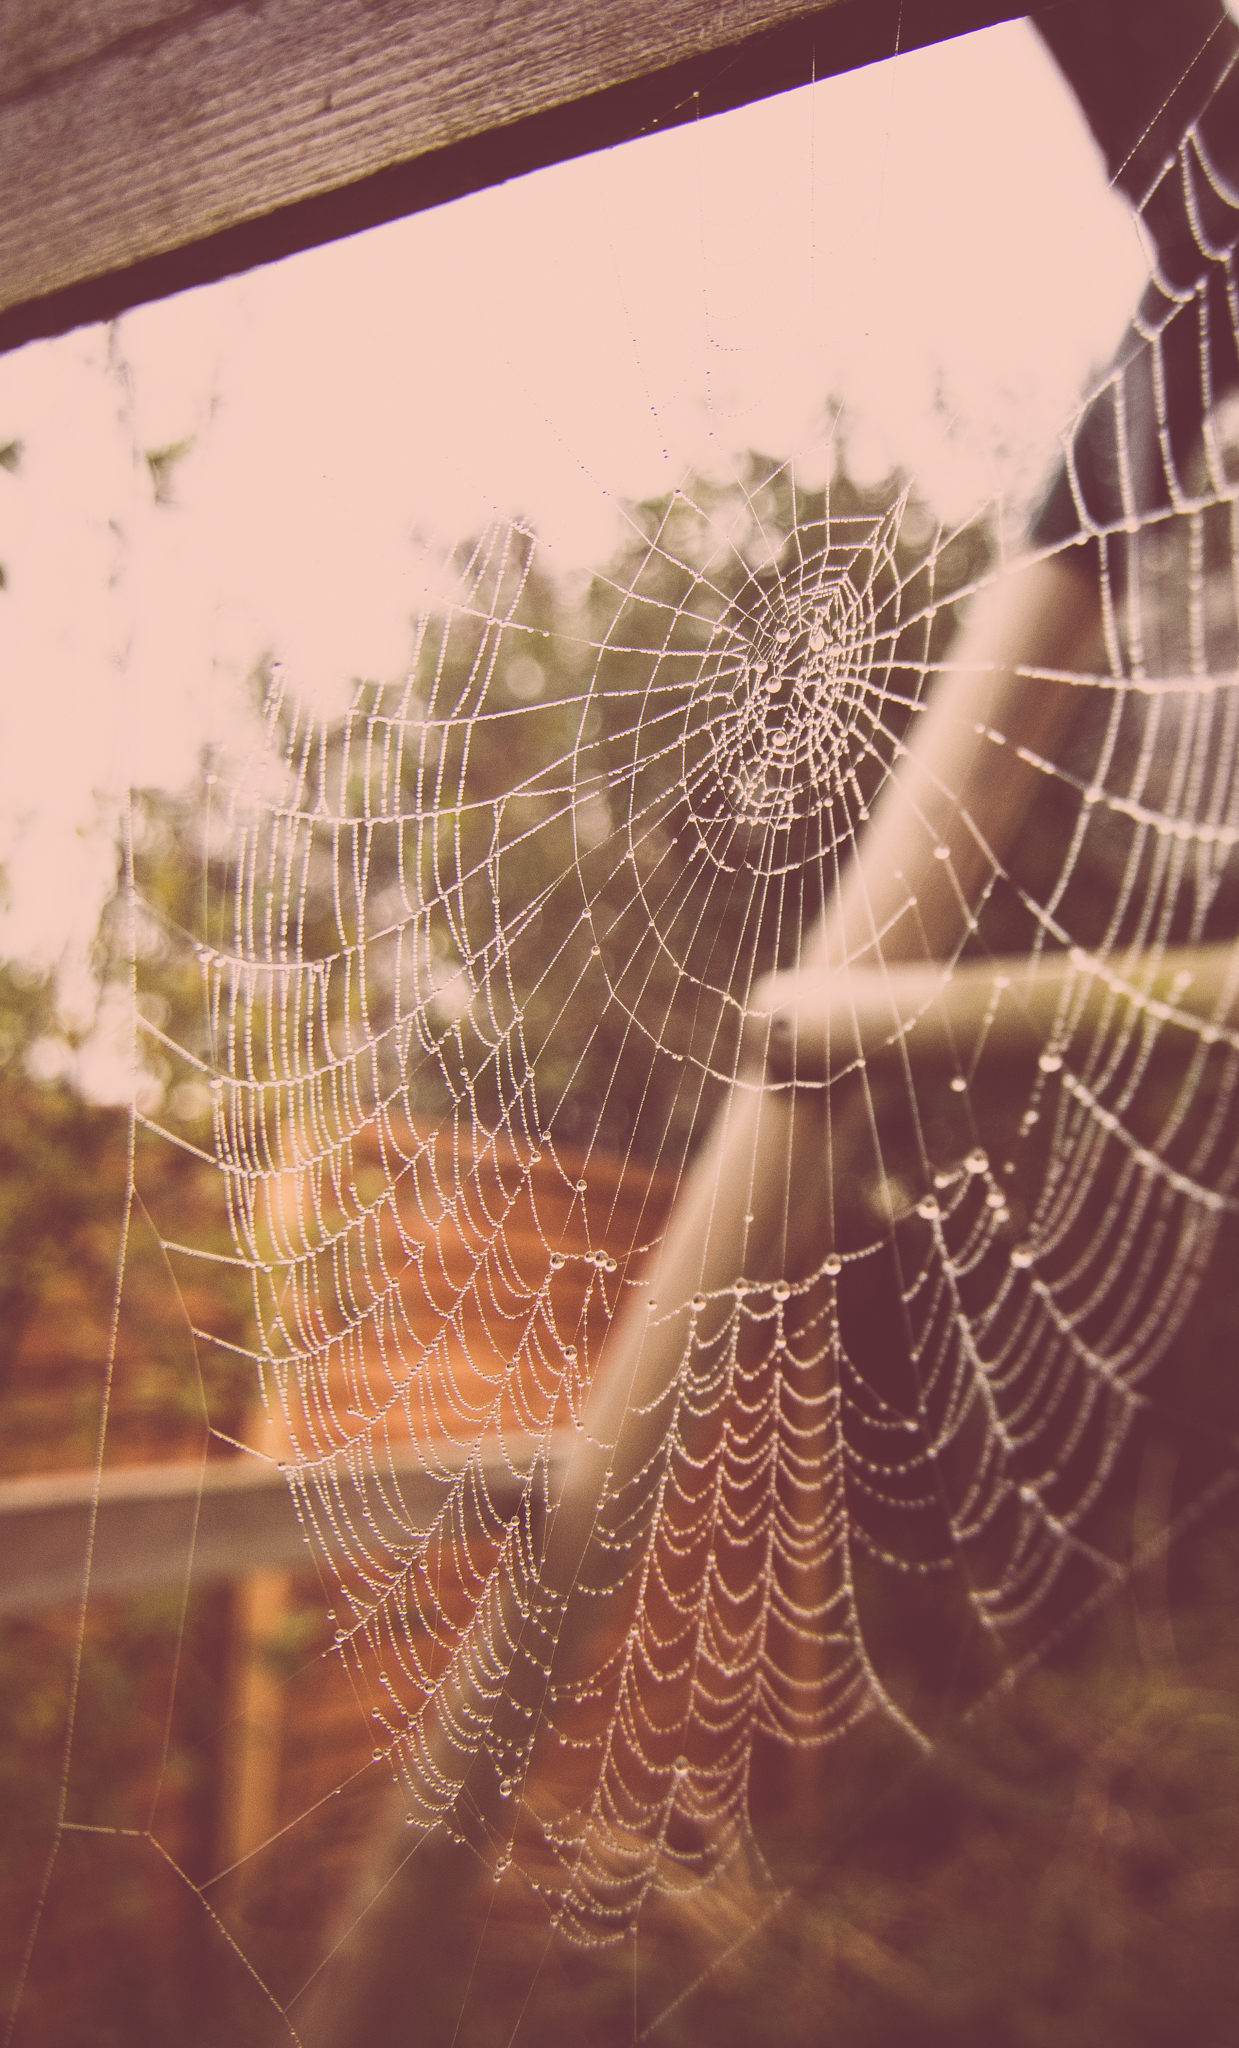 cobweb droplets